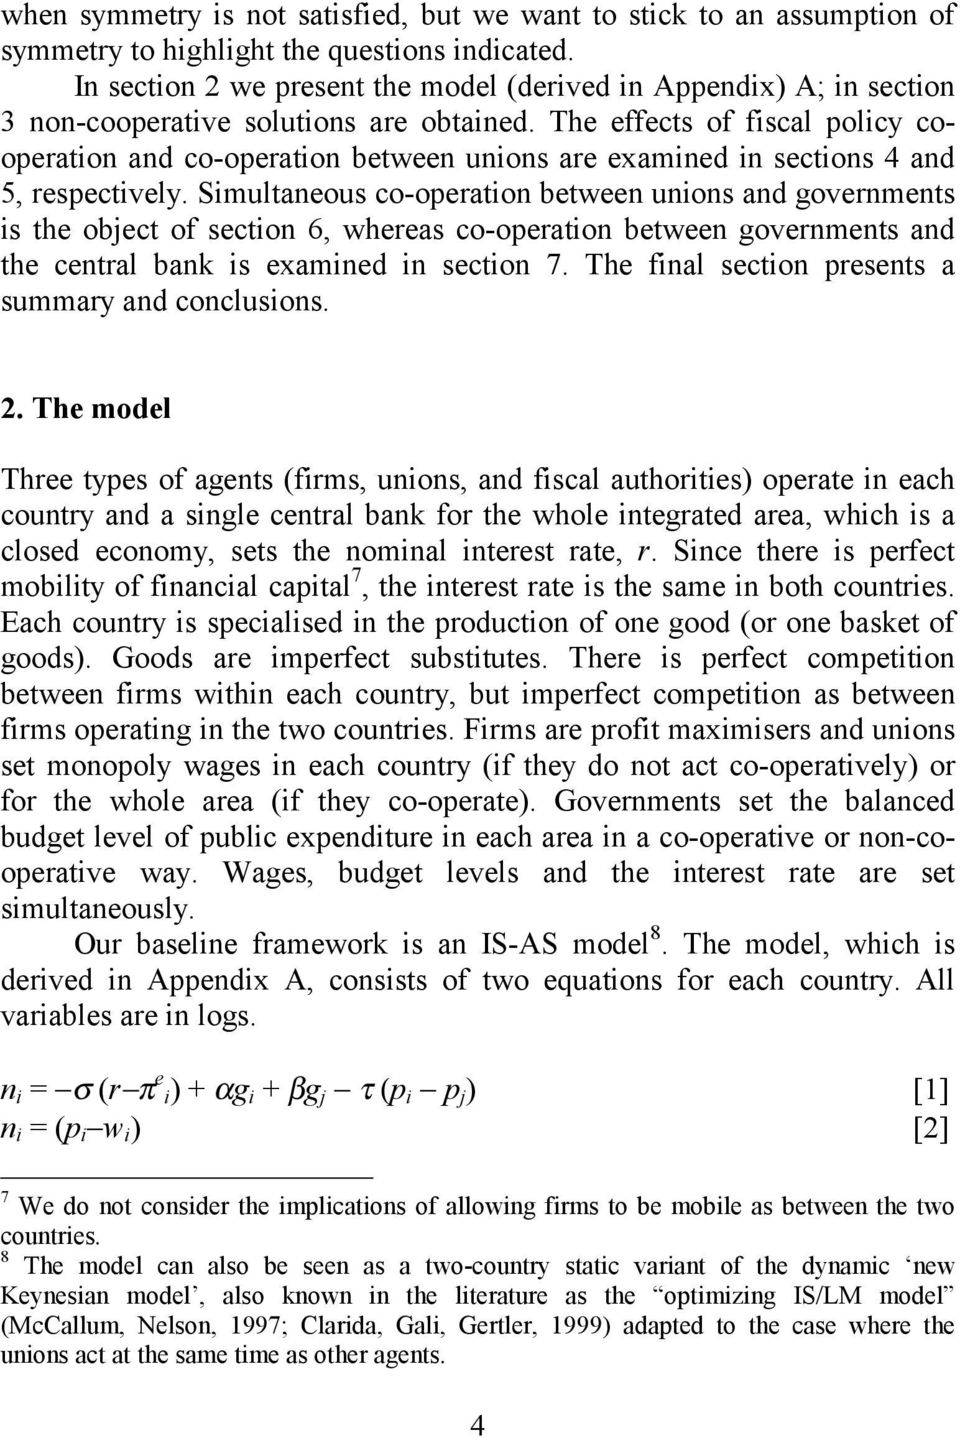 The effects of fiscal policy cooperation and co-operation between unions are examined in sections 4 and 5, respectively.